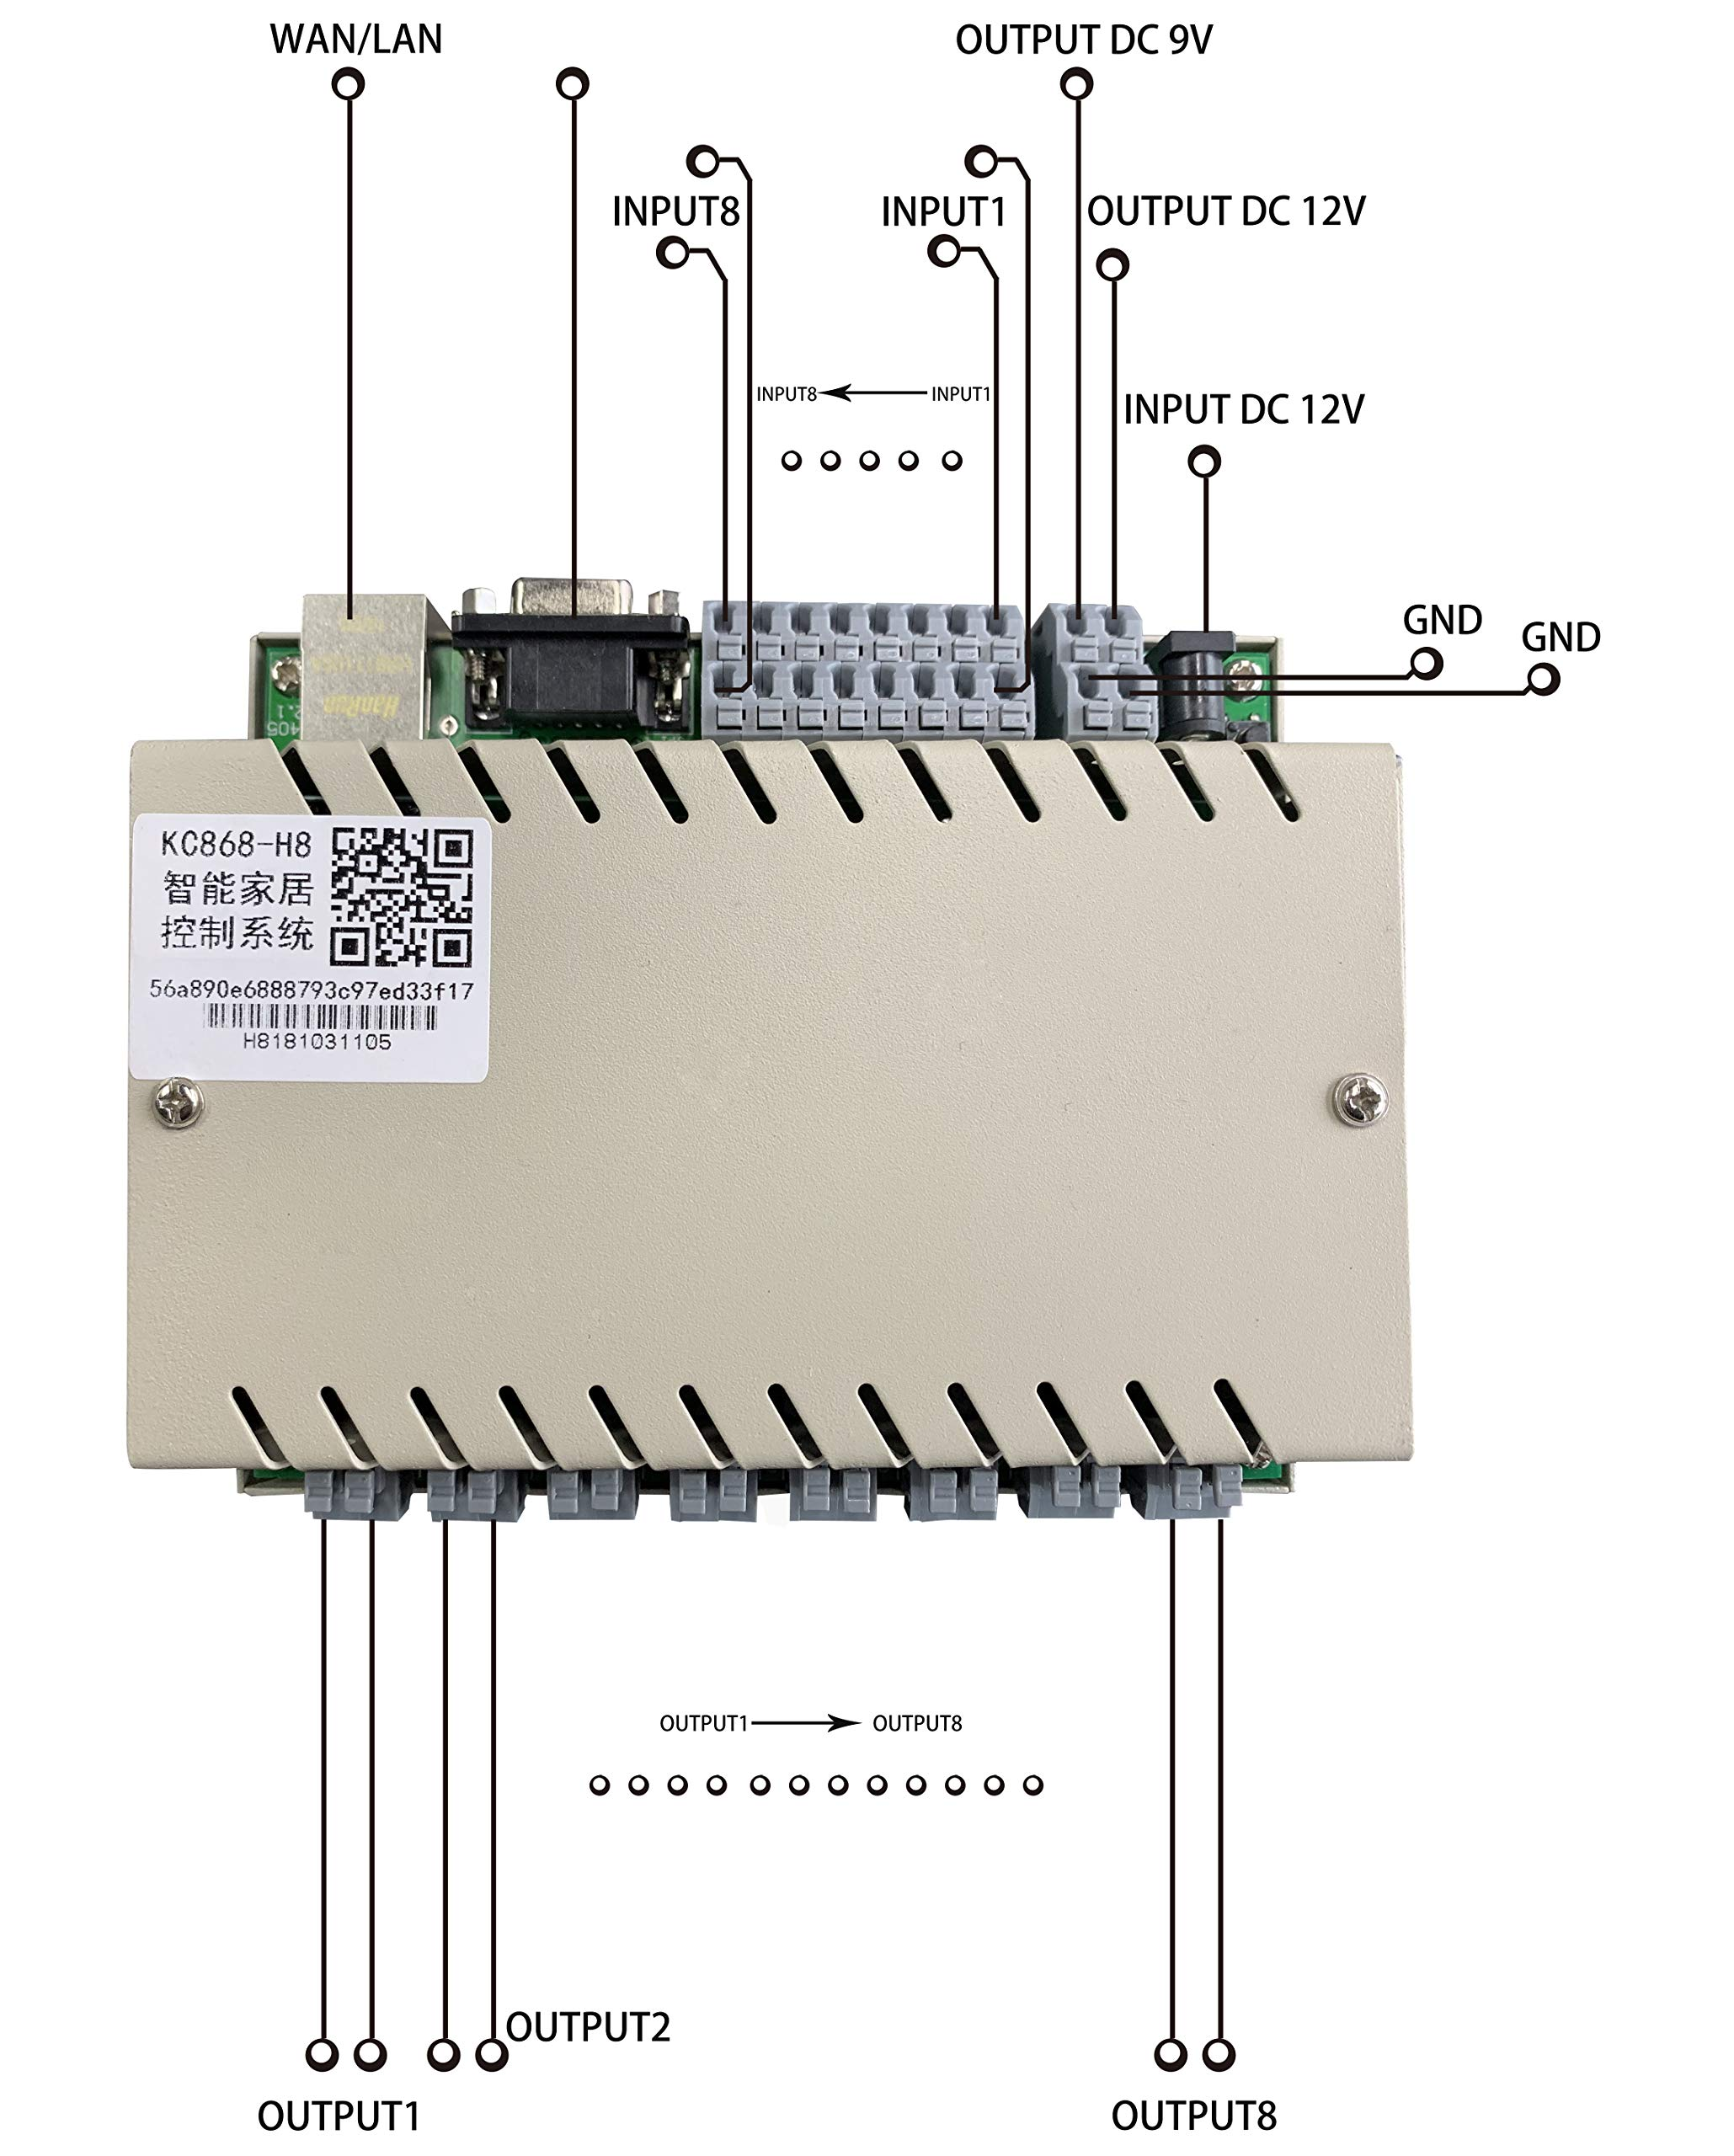 KinCony KC868-H8 gang Network IP Web Relay Controller module Ethernet rs232 for DIY smart home remote switch supply ios android app pc with protocol and sample source code by KinCony (Image #3)